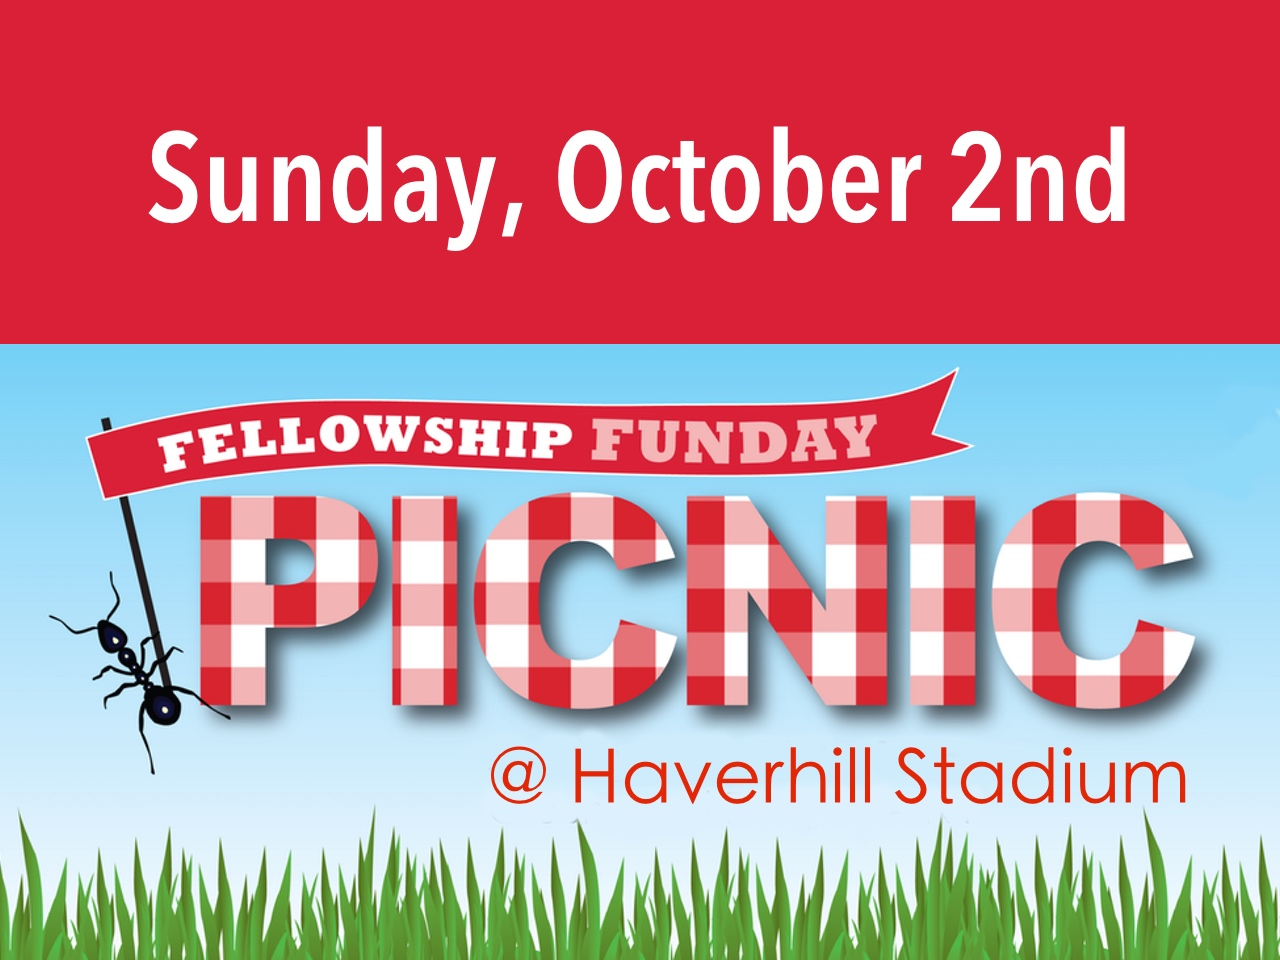 Come for worship and then head down to the Haverhill High Stadium for a time of hanging out, spending time together & playing games like softball and frisbee. Bring a picnic lunch and any outdoor games that you'd like to play..